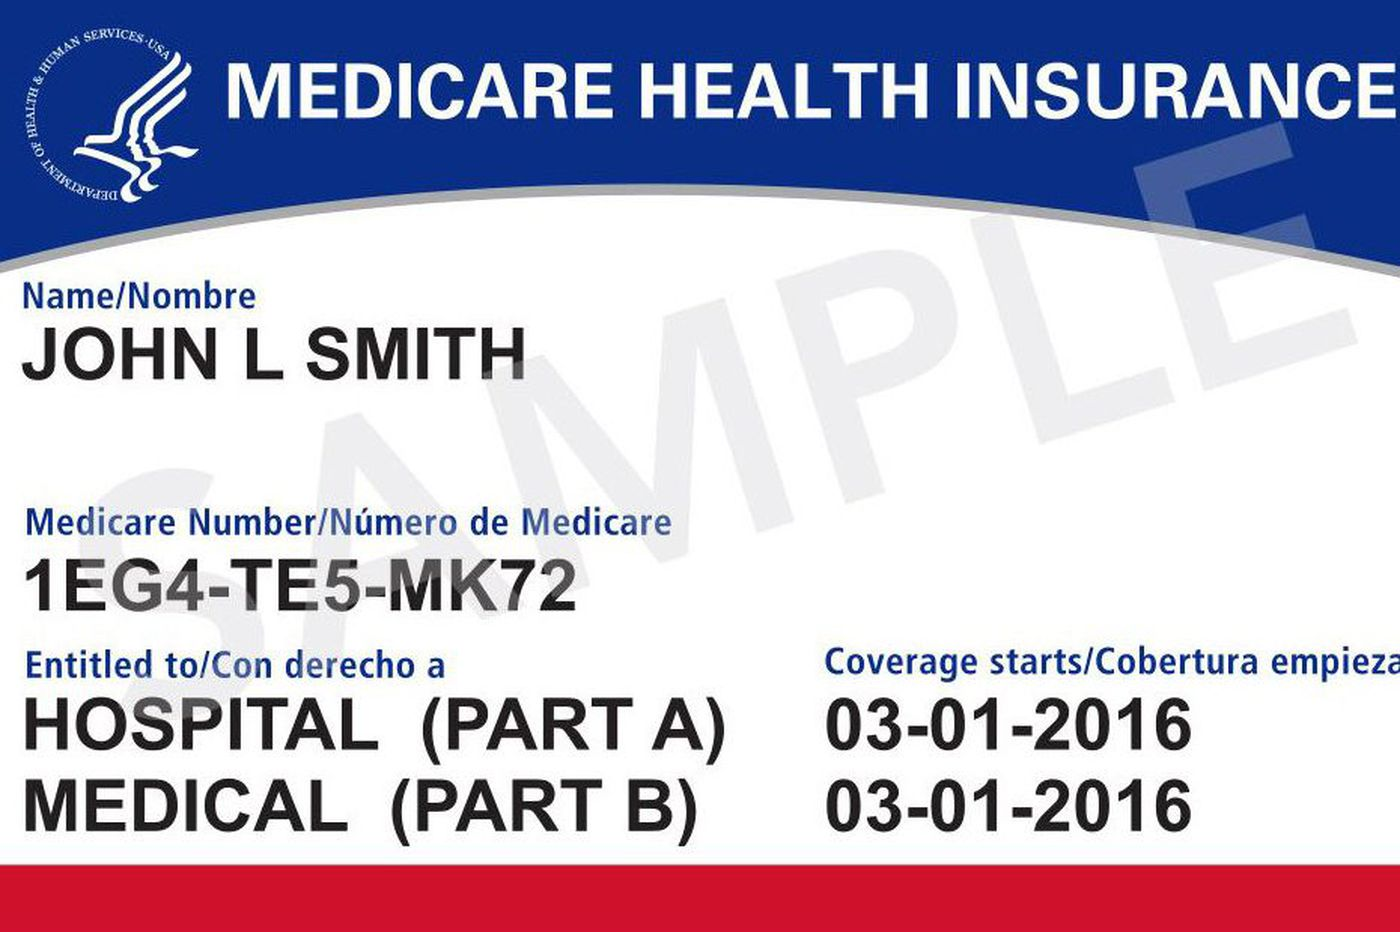 Live in Pa. and don't have your new Medicare card? Call the agency right away